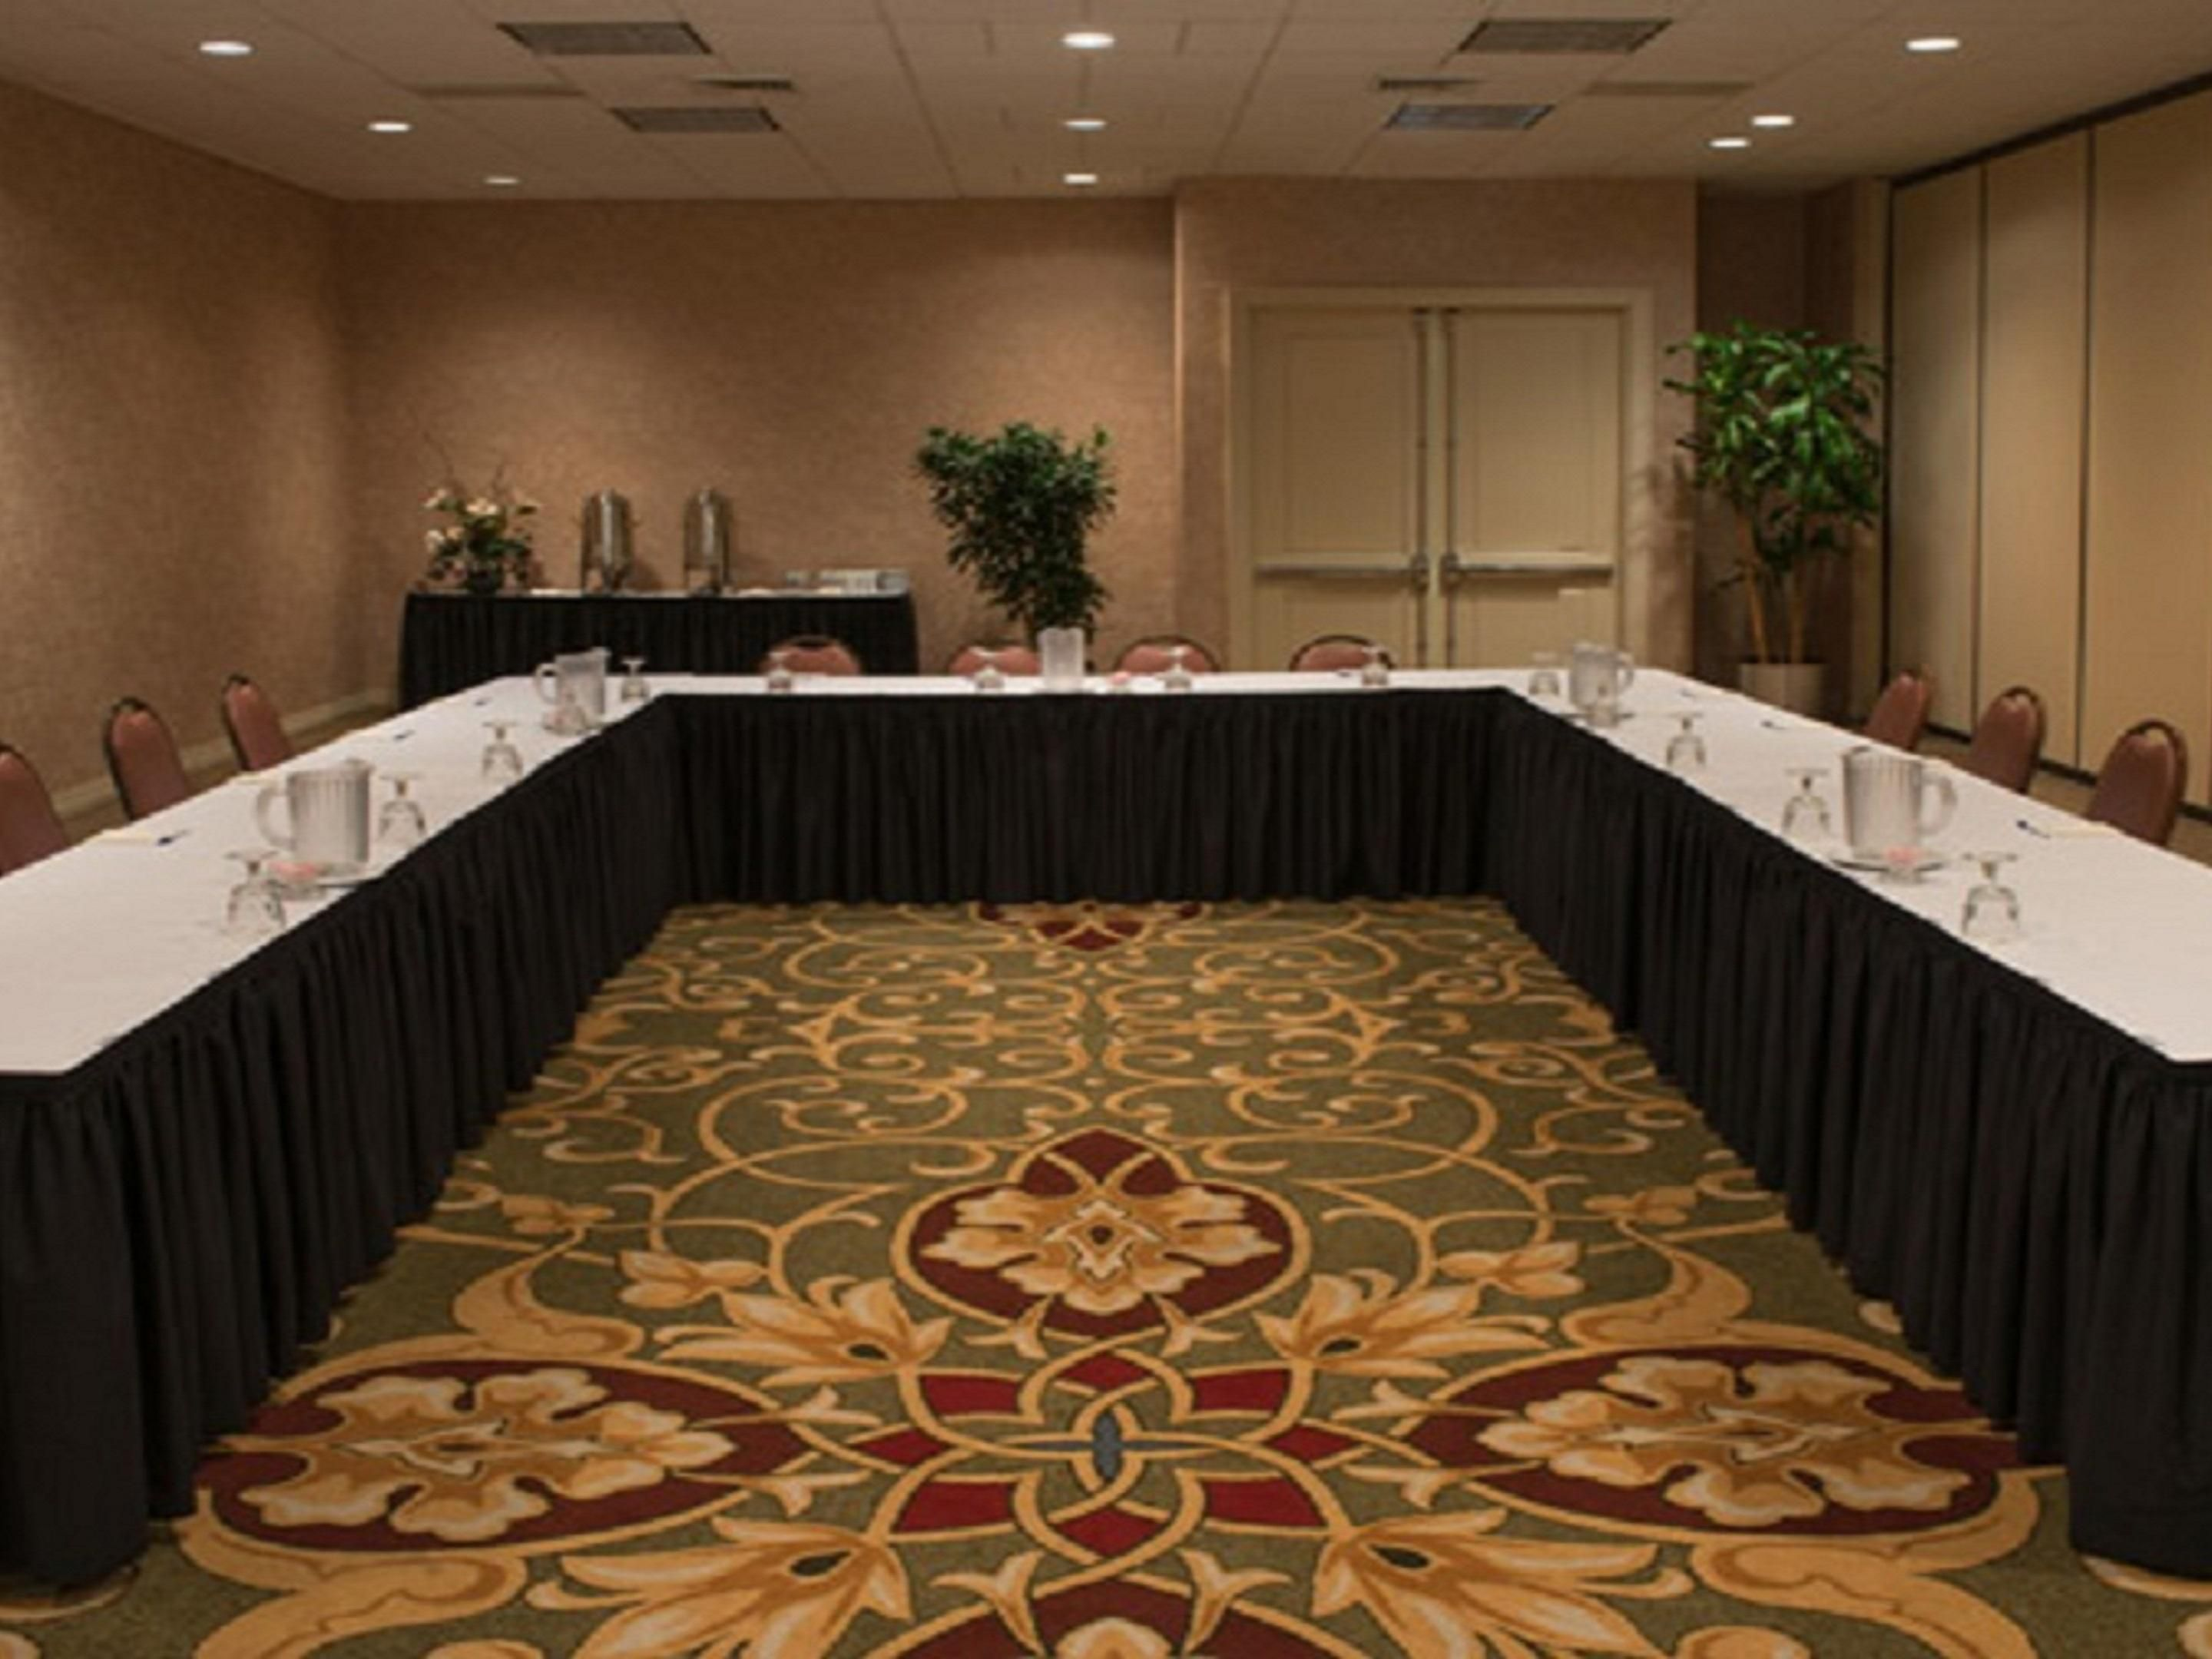 Holiday Inn Express Salon Meeting Room